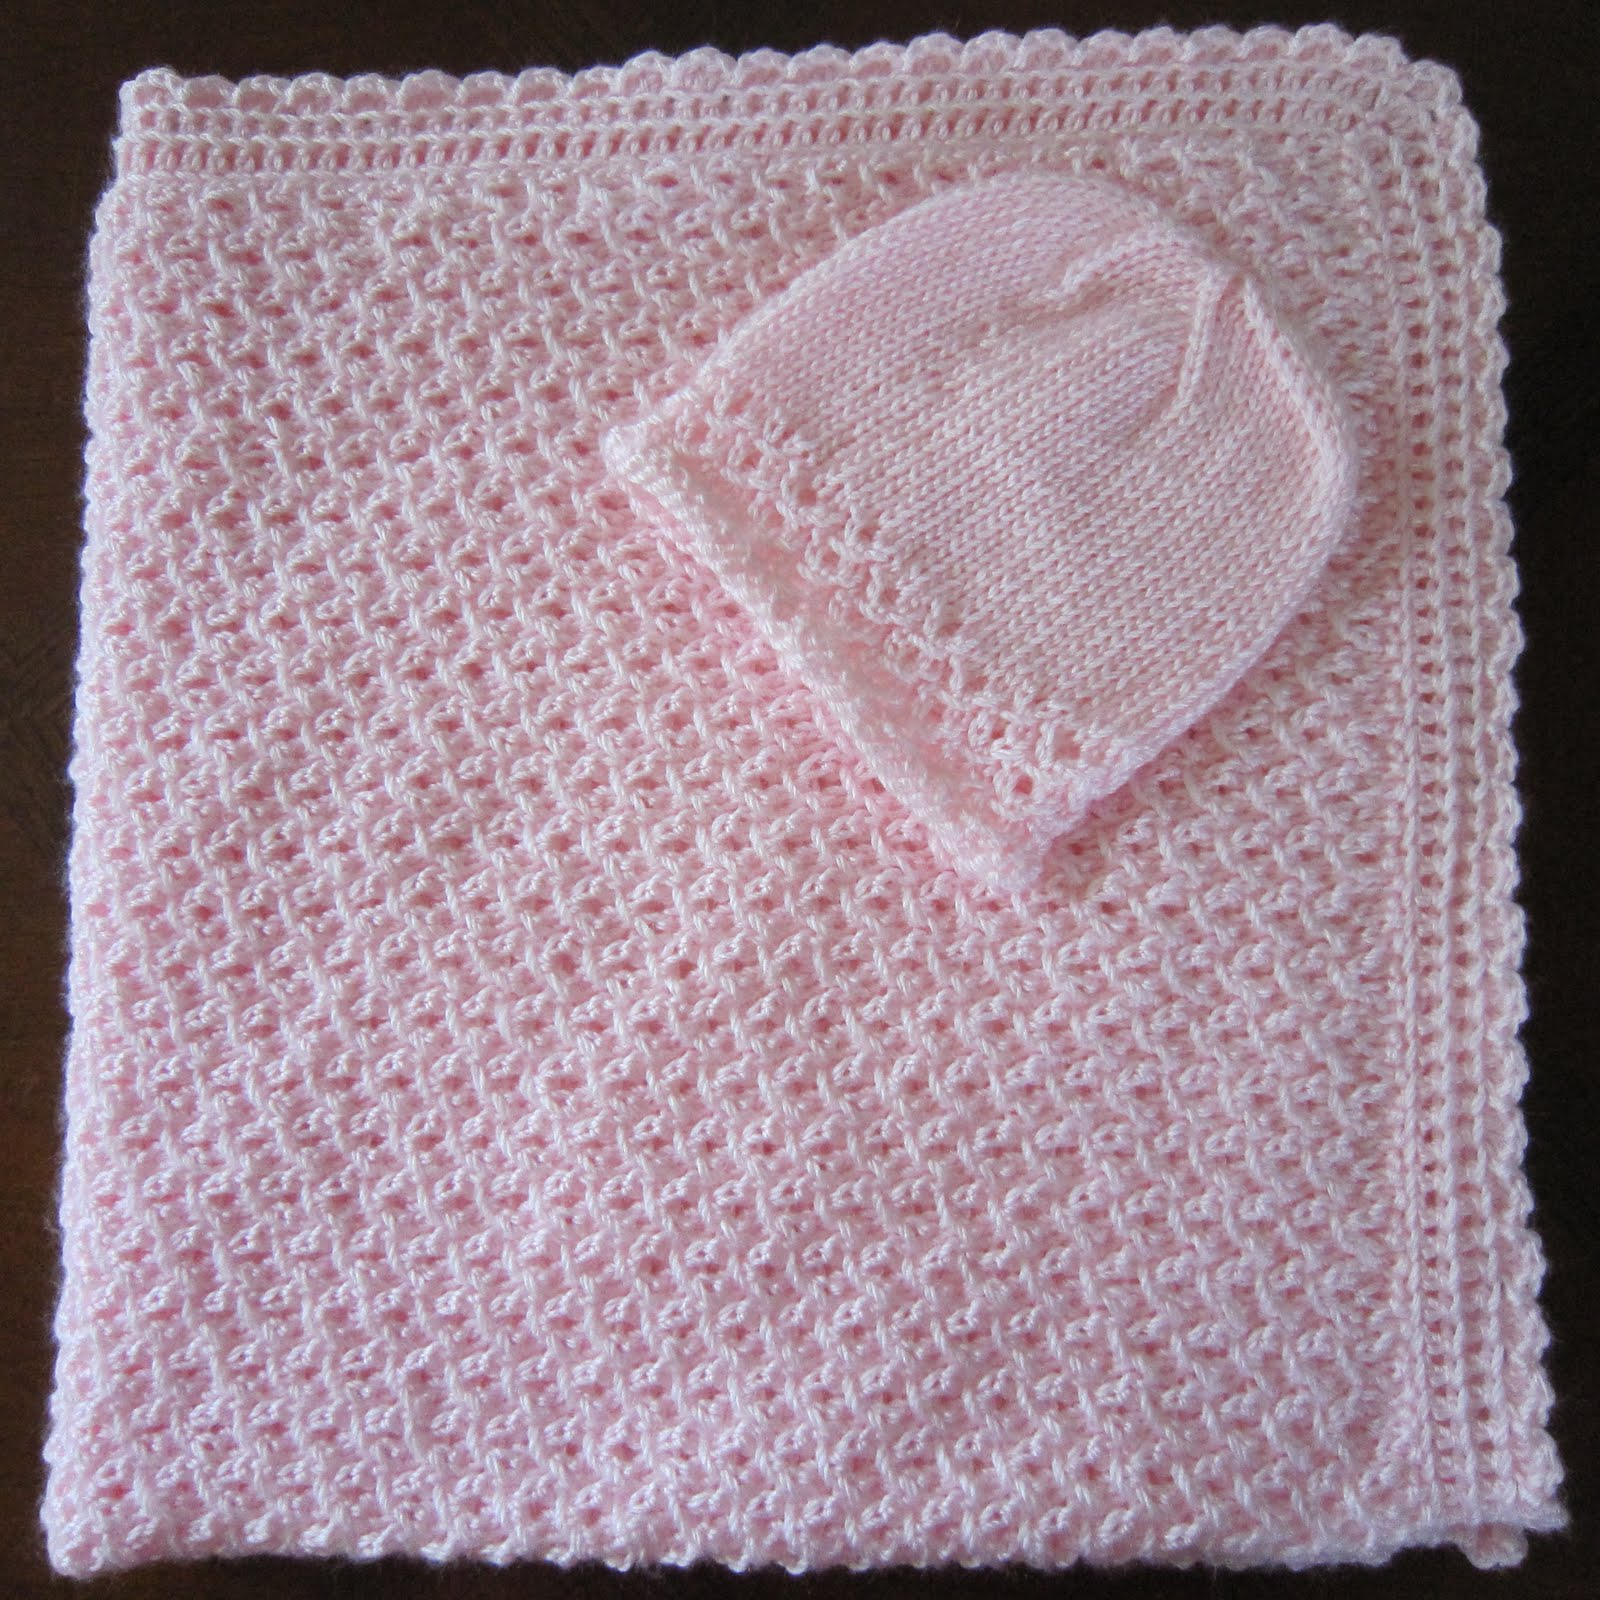 Knitted Baby Blanket Patterns For Free : Sea Trail Grandmas: Free KNIT PATTERN PREEMIE HAT AND BLANKET WAVES WITH CROC...